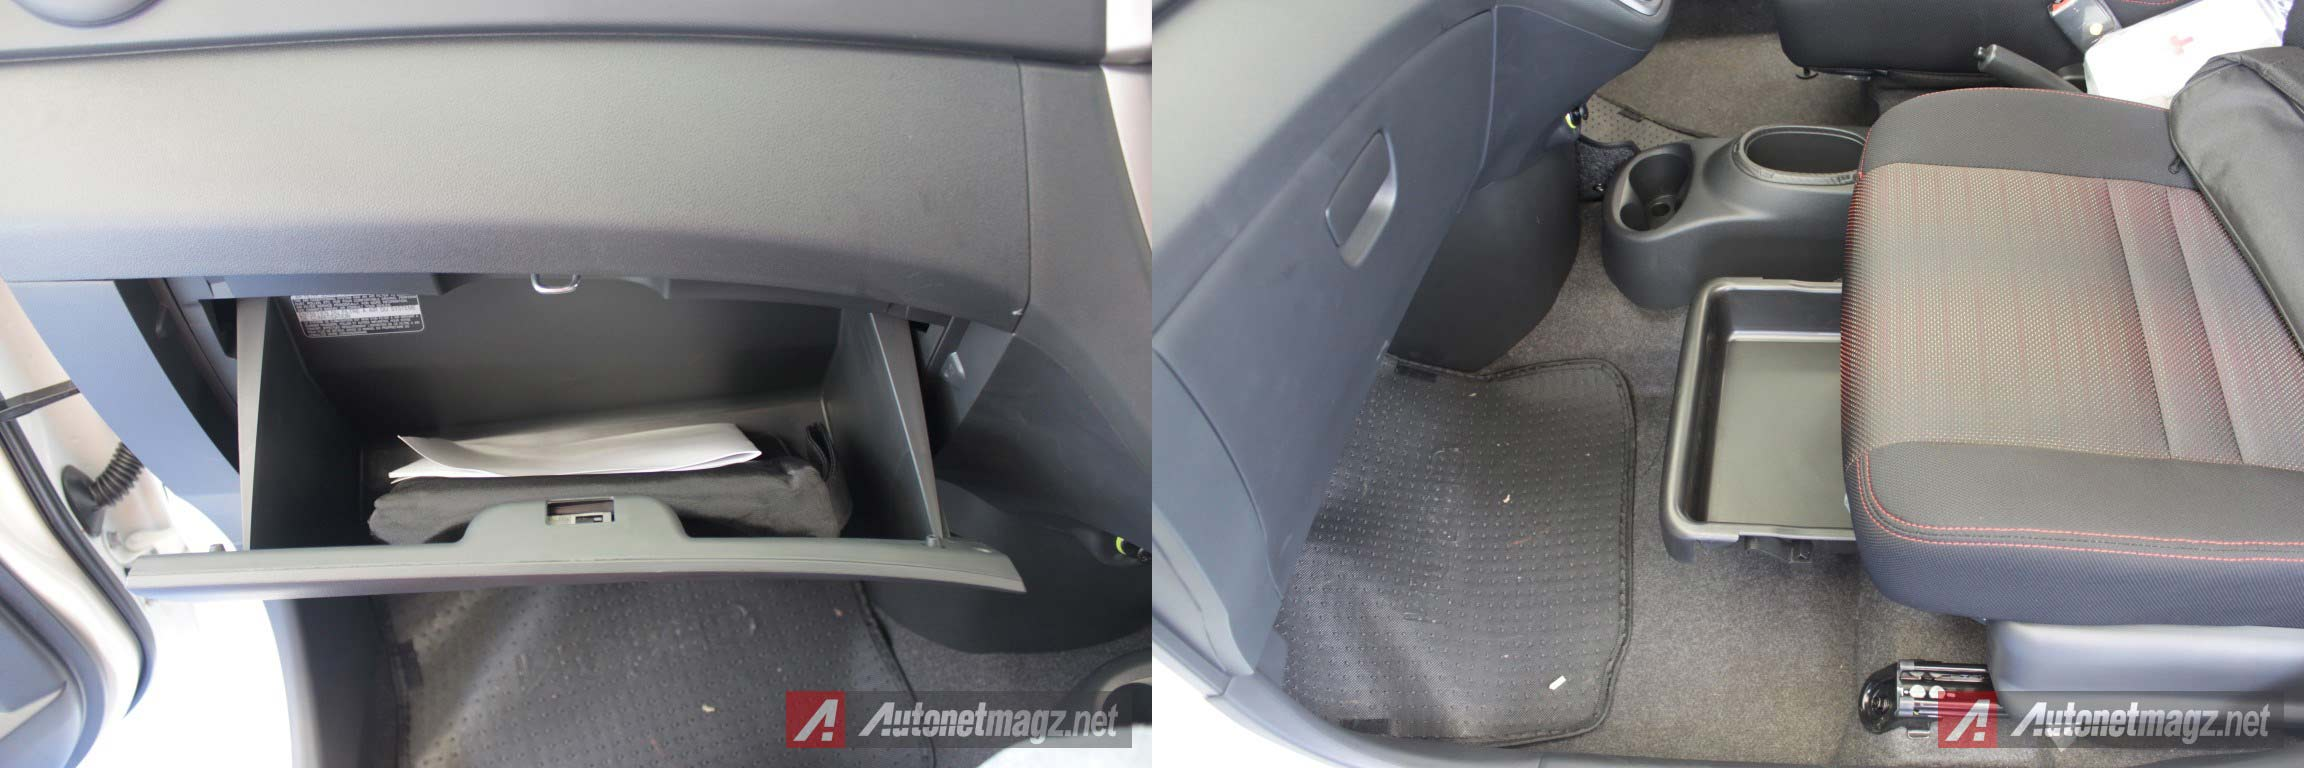 daihatsu-sirion-facelift-glovebox